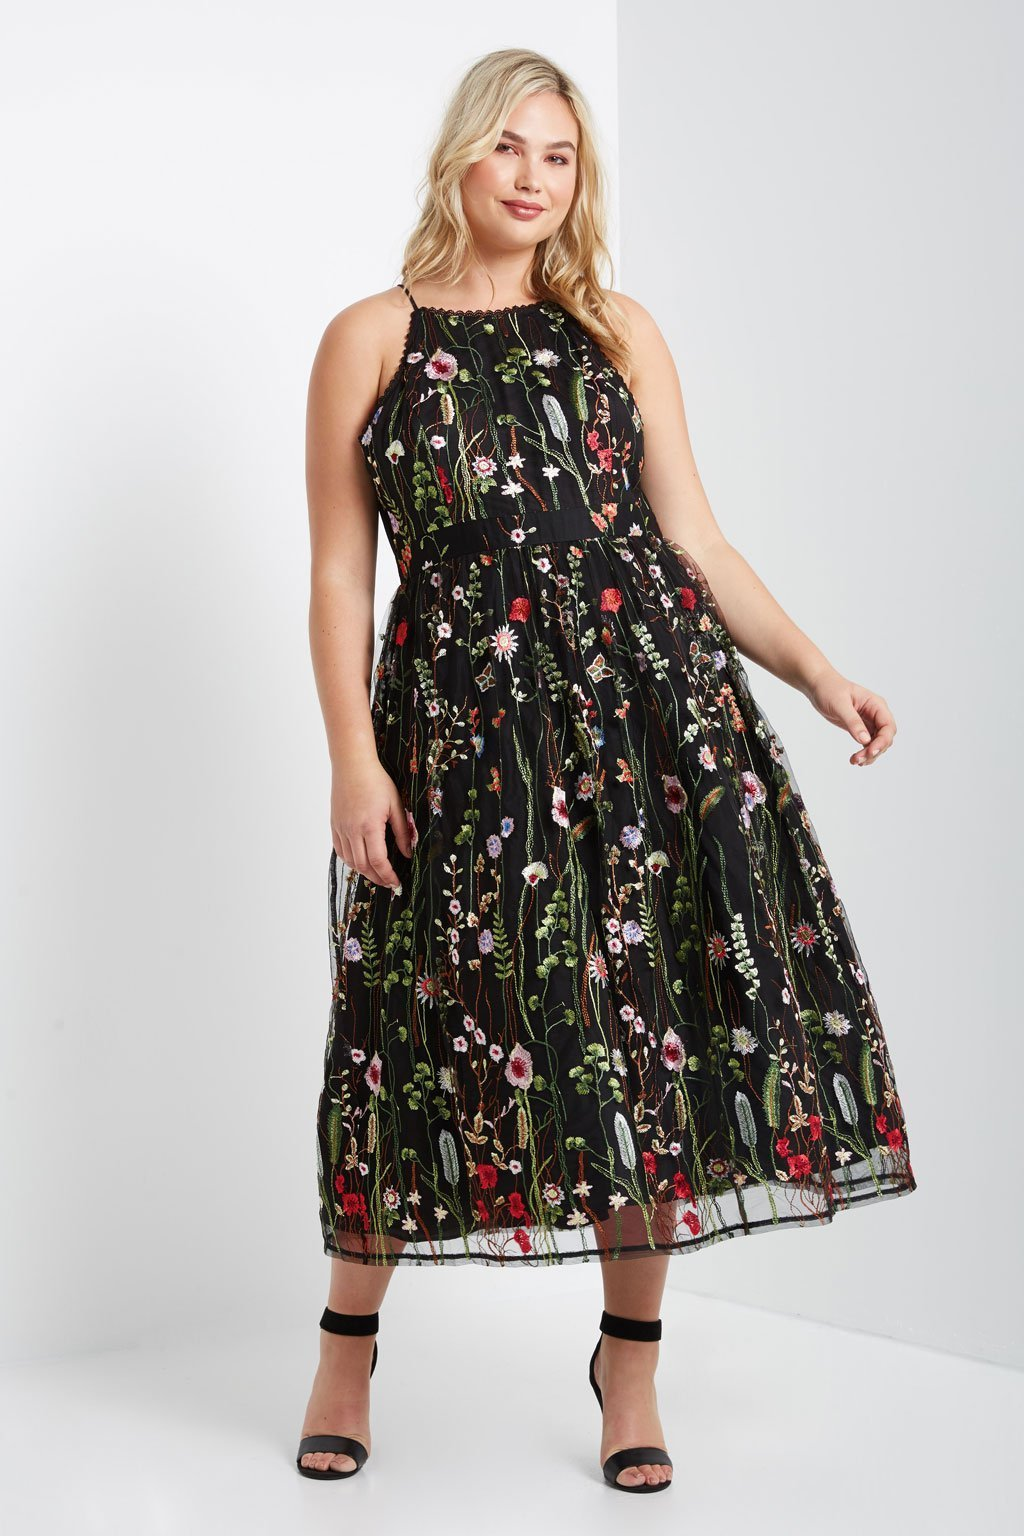 McGowan Floral Maxi Dress